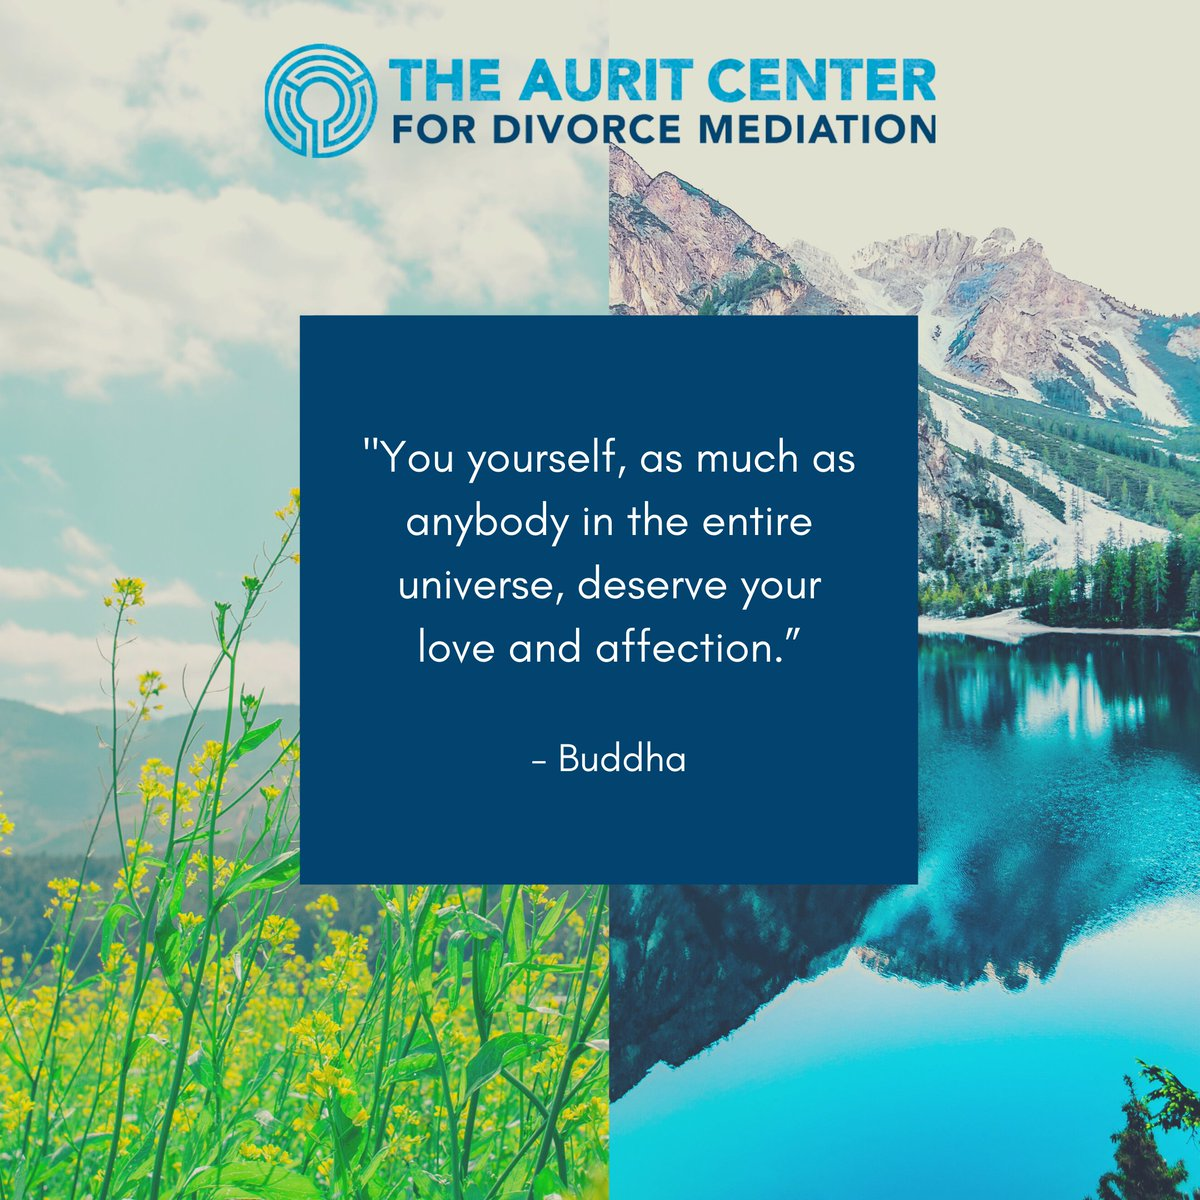 Take time to show yourself some love today. You deserve it.  #theauritcenter #healthydivorce #mediation #divorcemediation #online #onlinemediation #family #selfcare #selflove #time #breathe #deserve #wecare #conflictresolution #quote #Buddha #love #affection #universe https://t.co/doKAudraqS